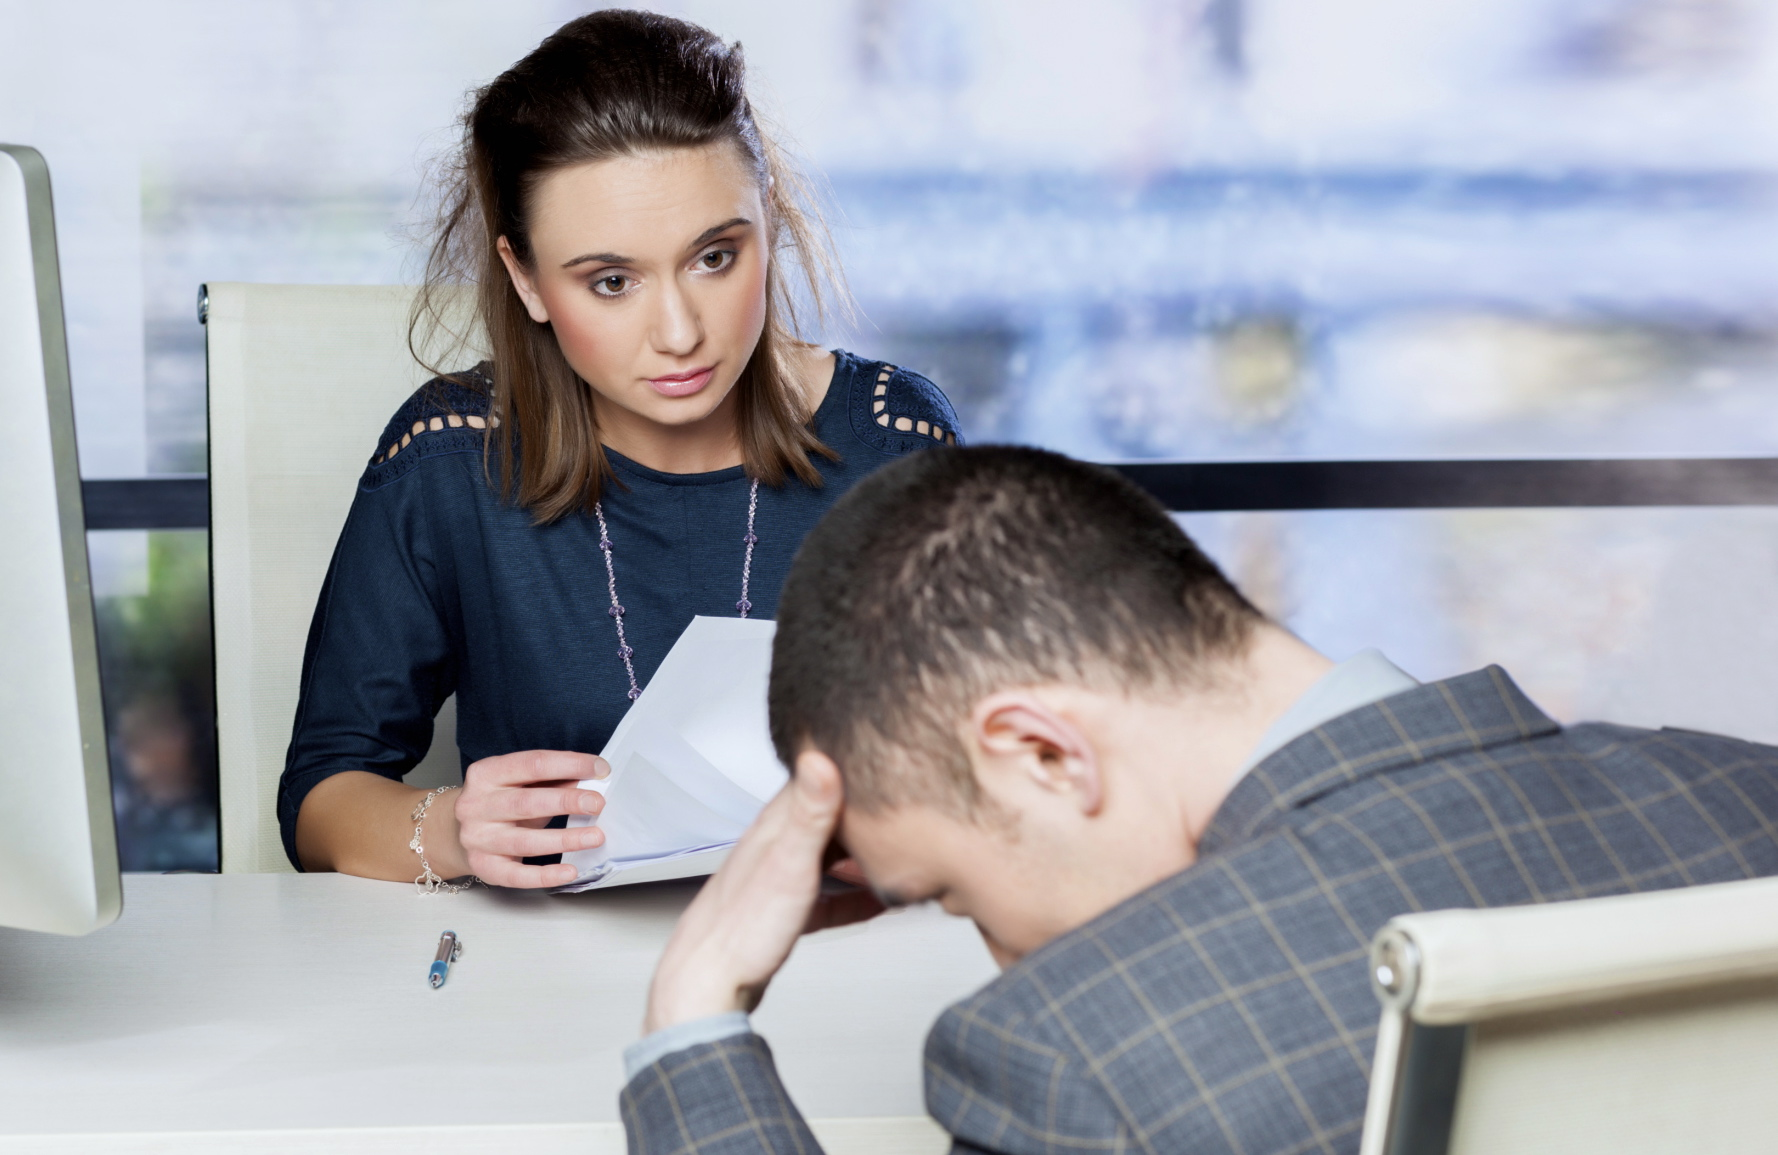 10 Most Common Job Interview Miscues Fresh Graduates Should Avoid